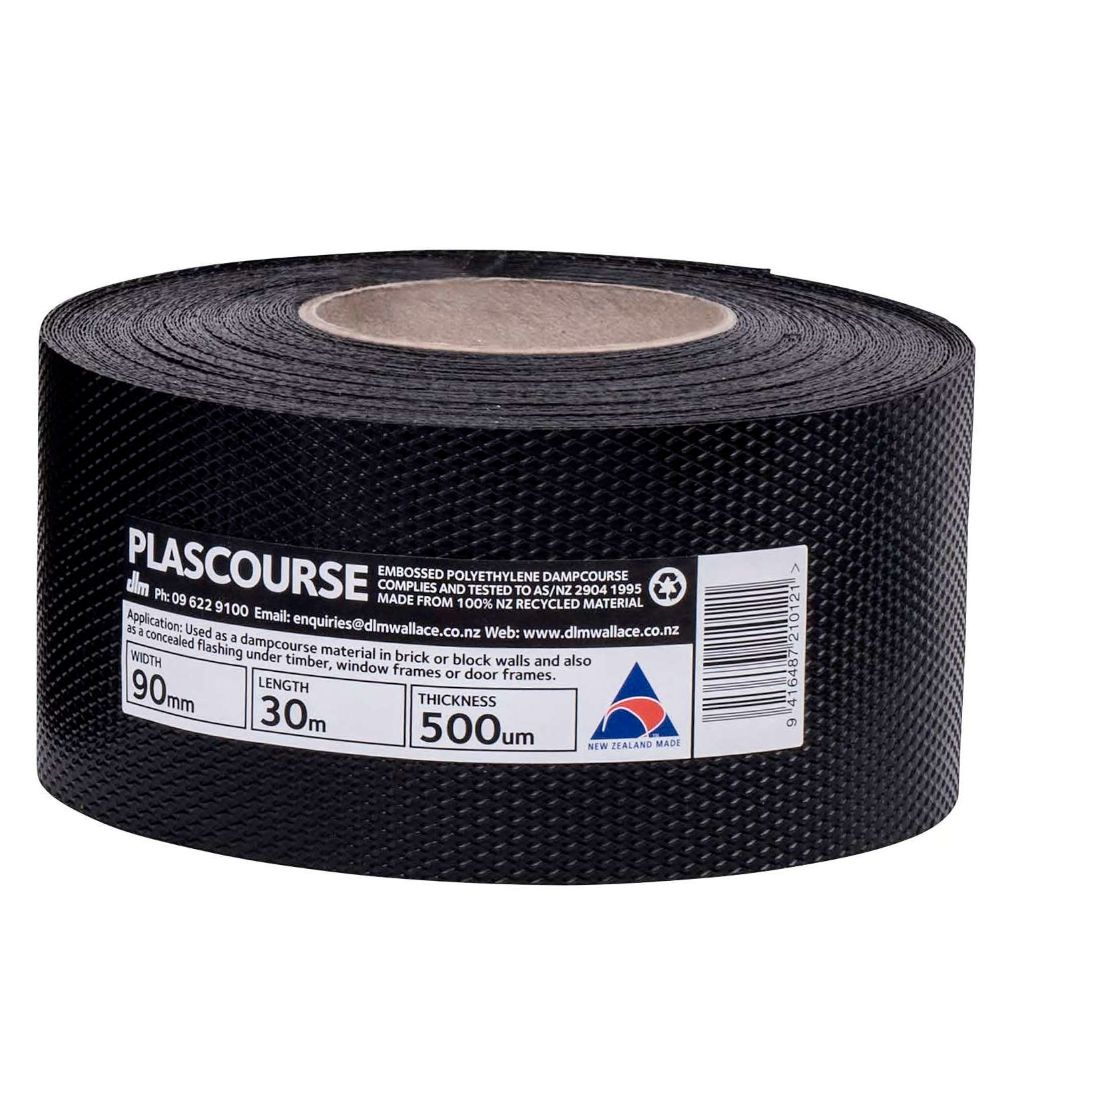 Plascourse Damp Proof Course 90mm x 30m